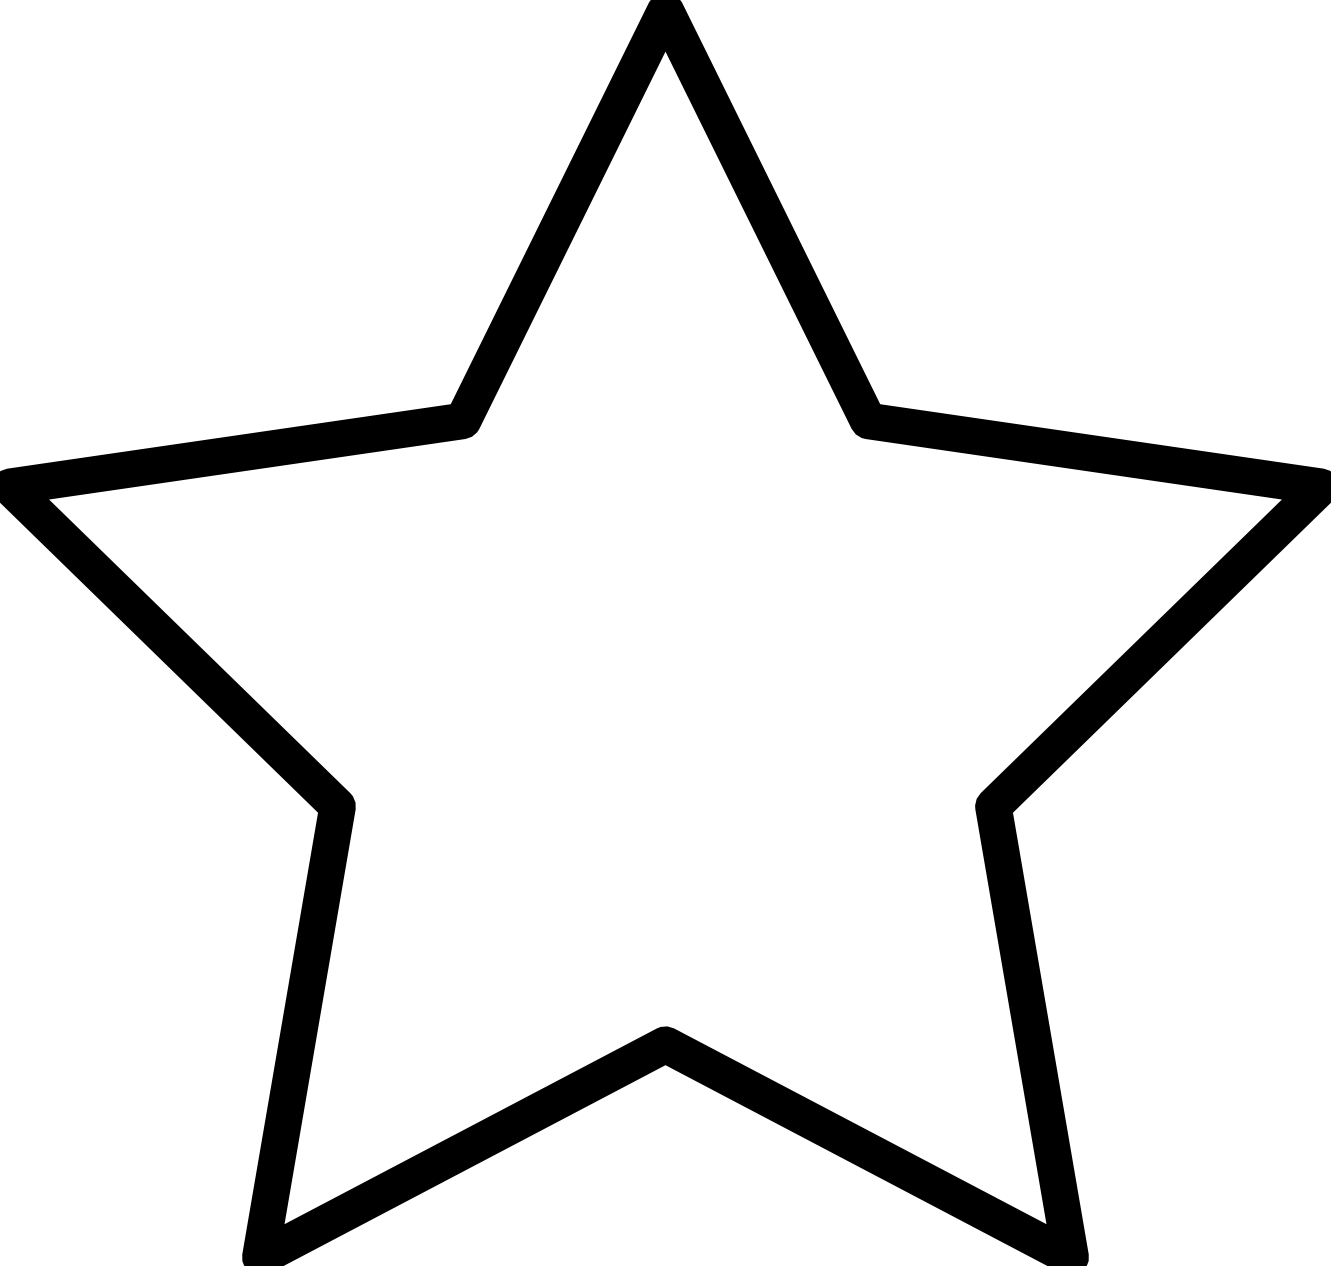 Star burst clipart black and white png transparent library Star Clip Art Black And White | Clipart Panda - Free Clipart Images png transparent library